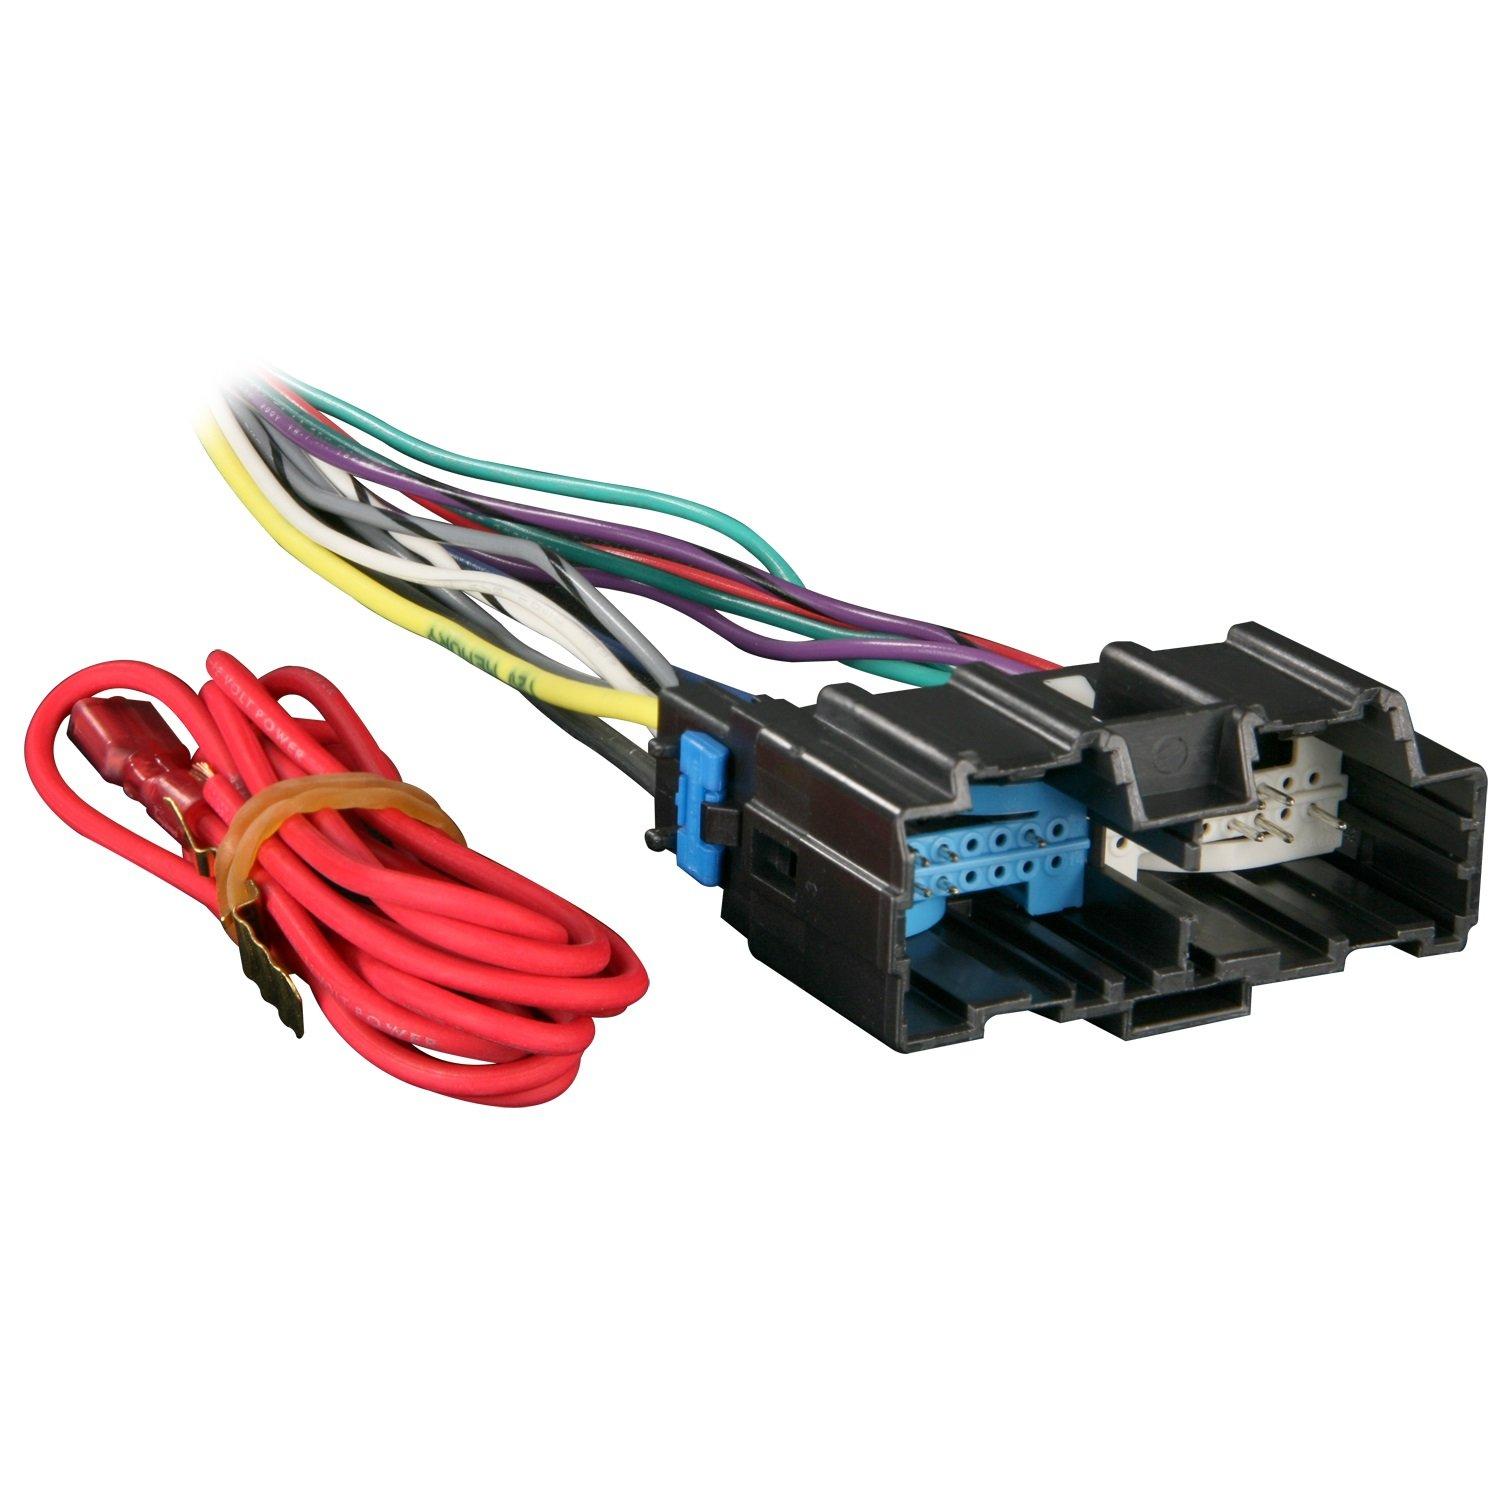 71ZzH dyg7L._SL1500_ amazon com metra 70 2105 radio wiring harness for impala monte monte carlo wiring harness at bayanpartner.co